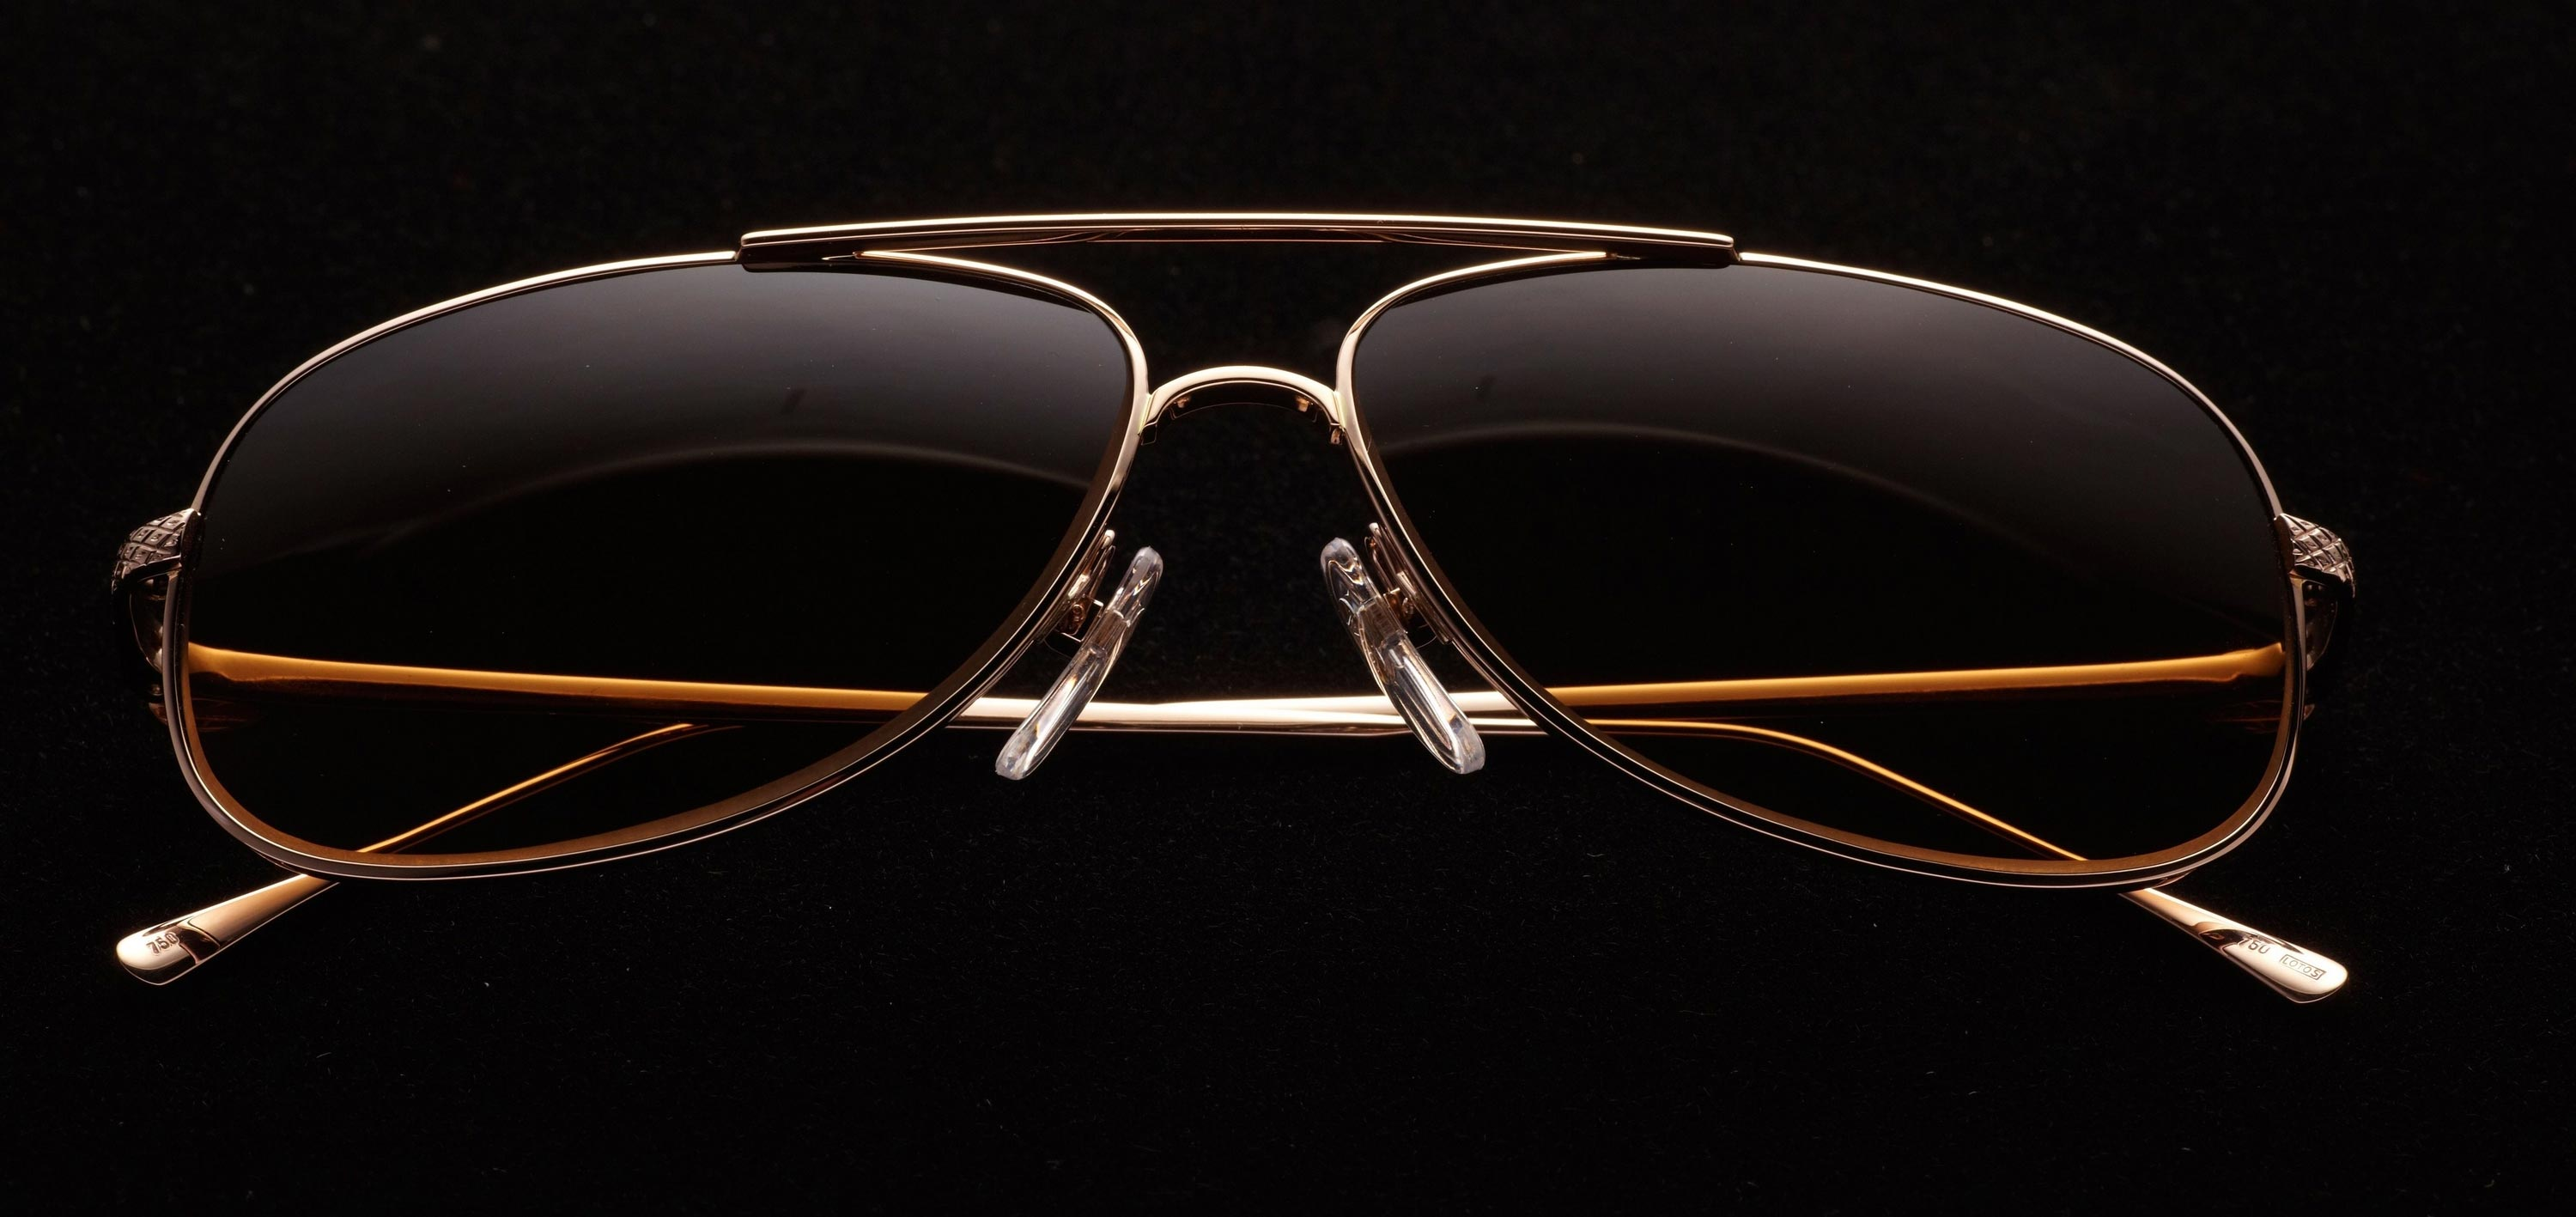 Bentley and Estede Unveil Limited Edition Sunglasses